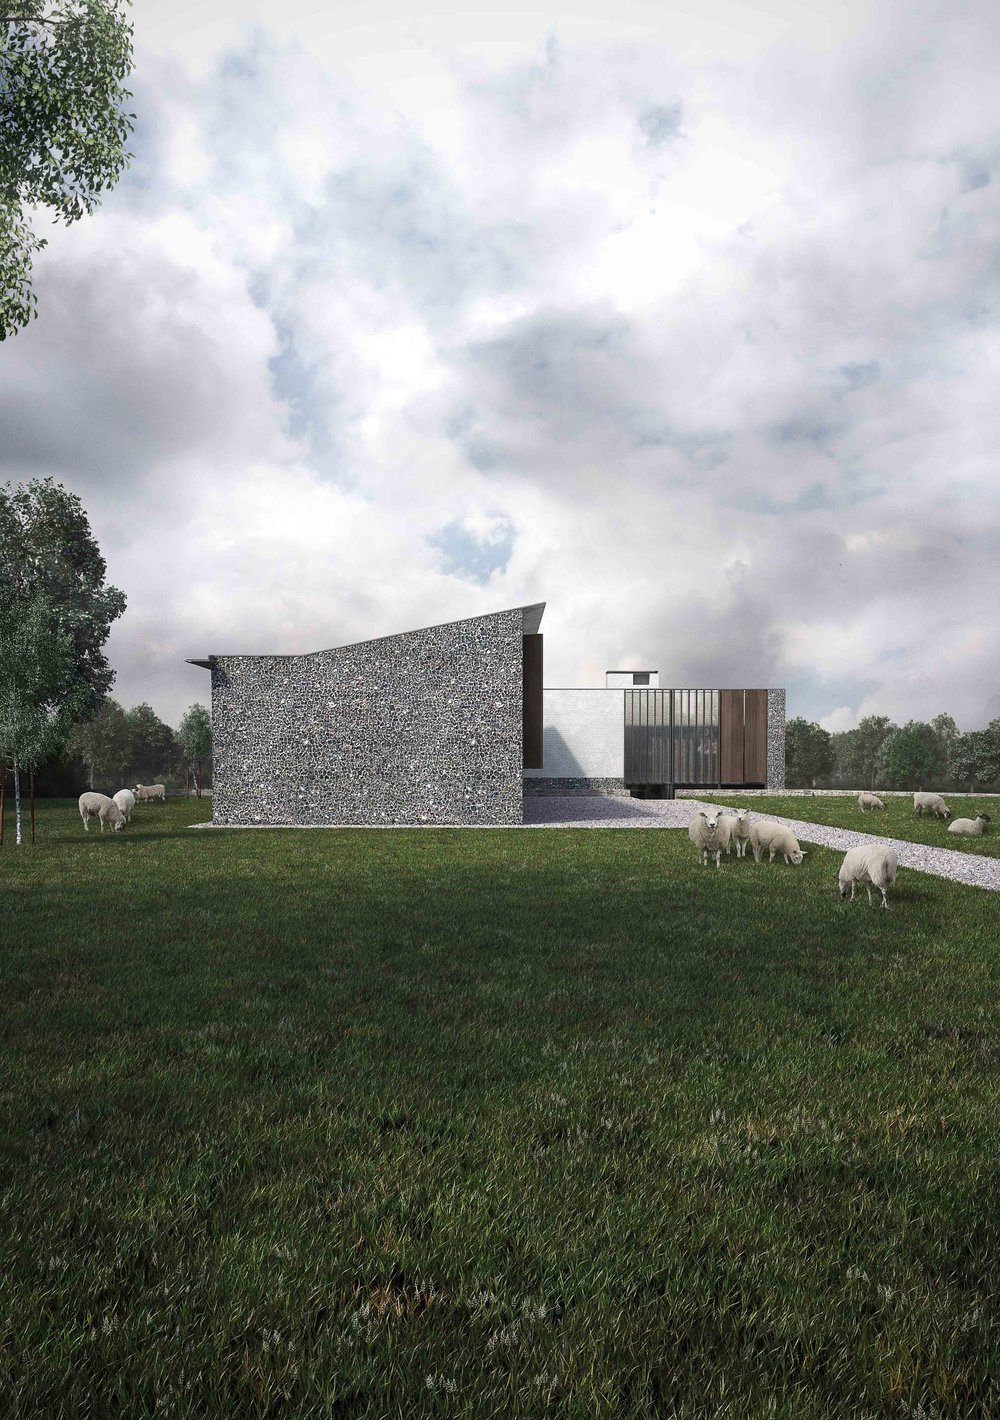 Sheep-house-exterior-render-visualisation-modern-architecture-winchester-hampshire-image.jpg